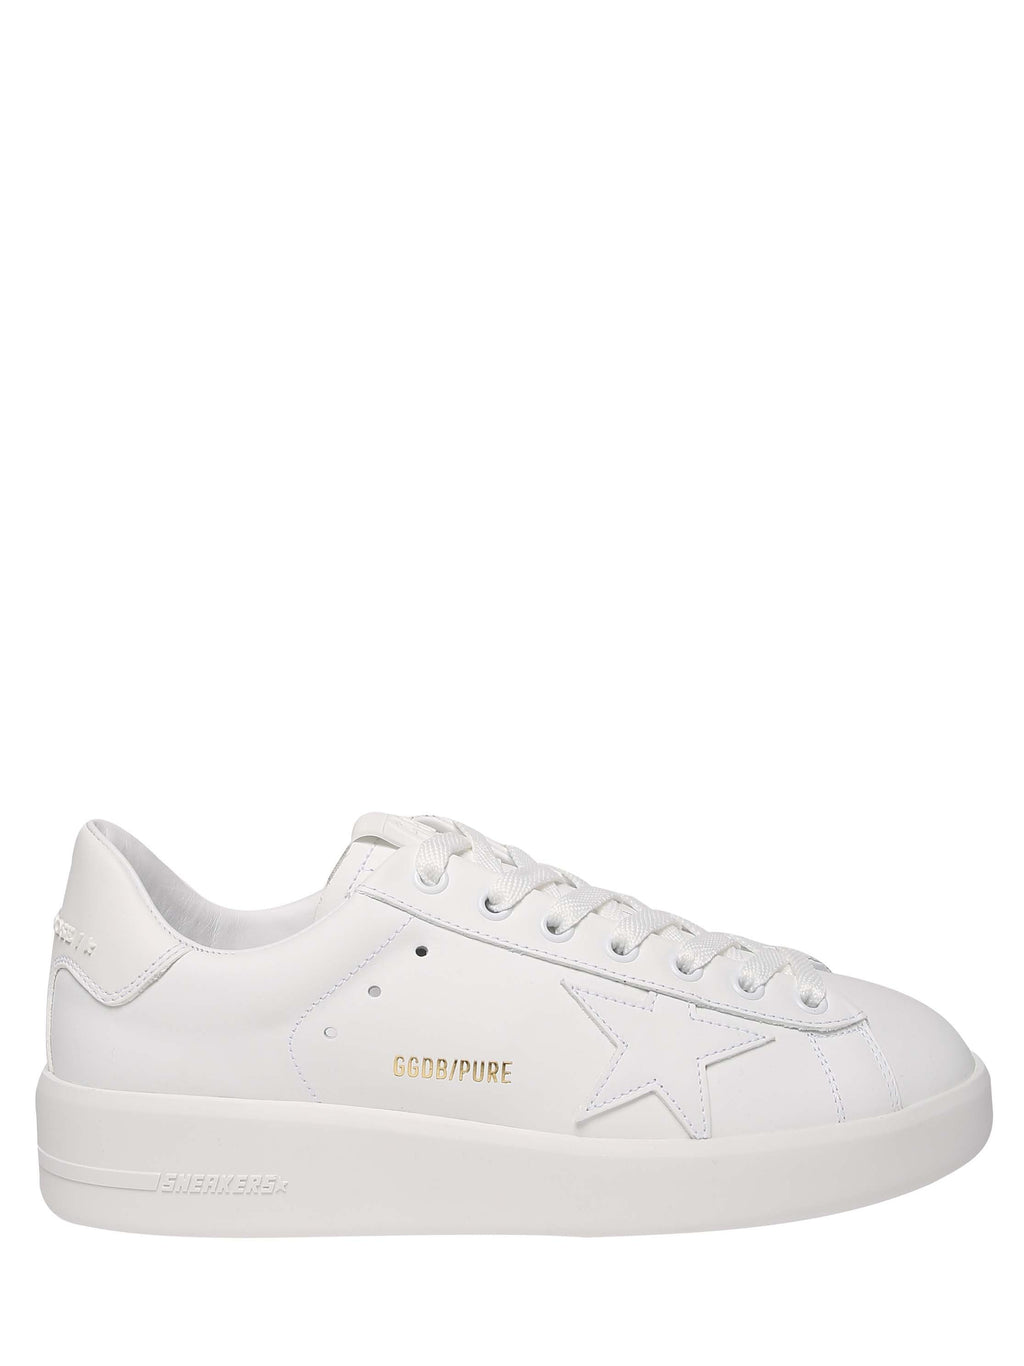 GOLDEN GOOSE Purestar model leather sneakers